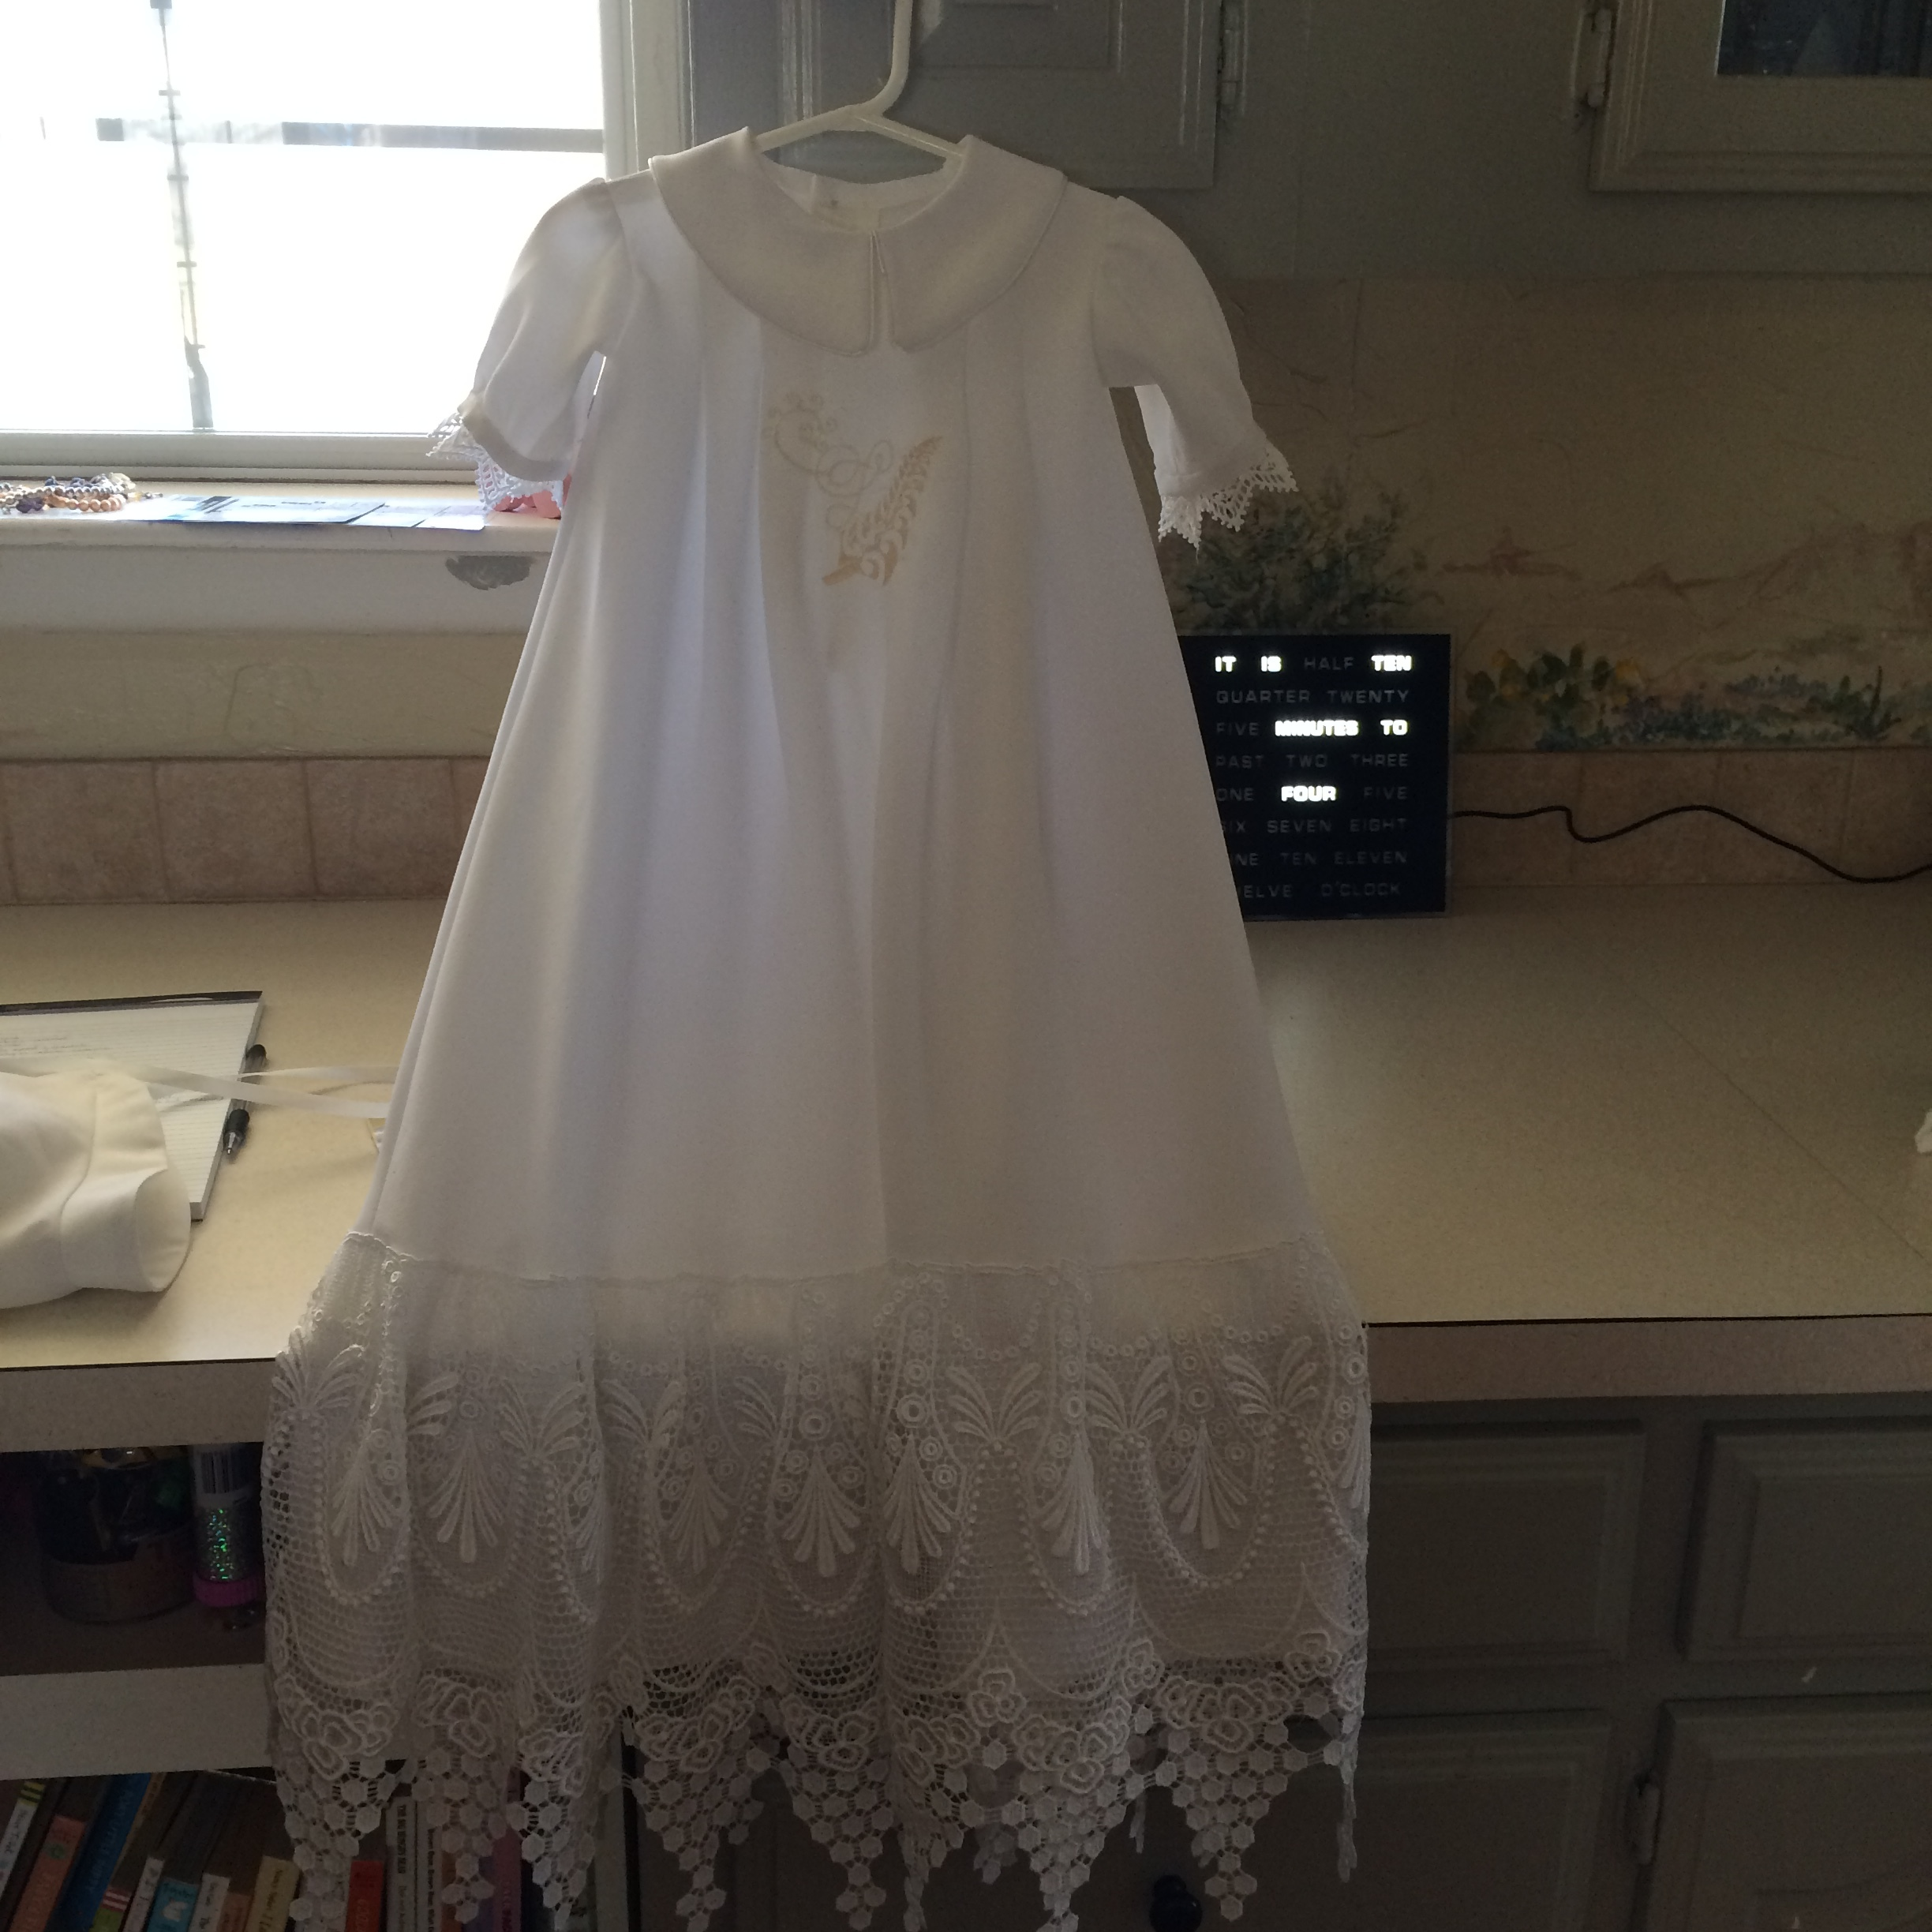 Christening gowns, made out of a grandmother's wedding dress with custom embroidery, she told me what she wanted and I drew the embroidery.